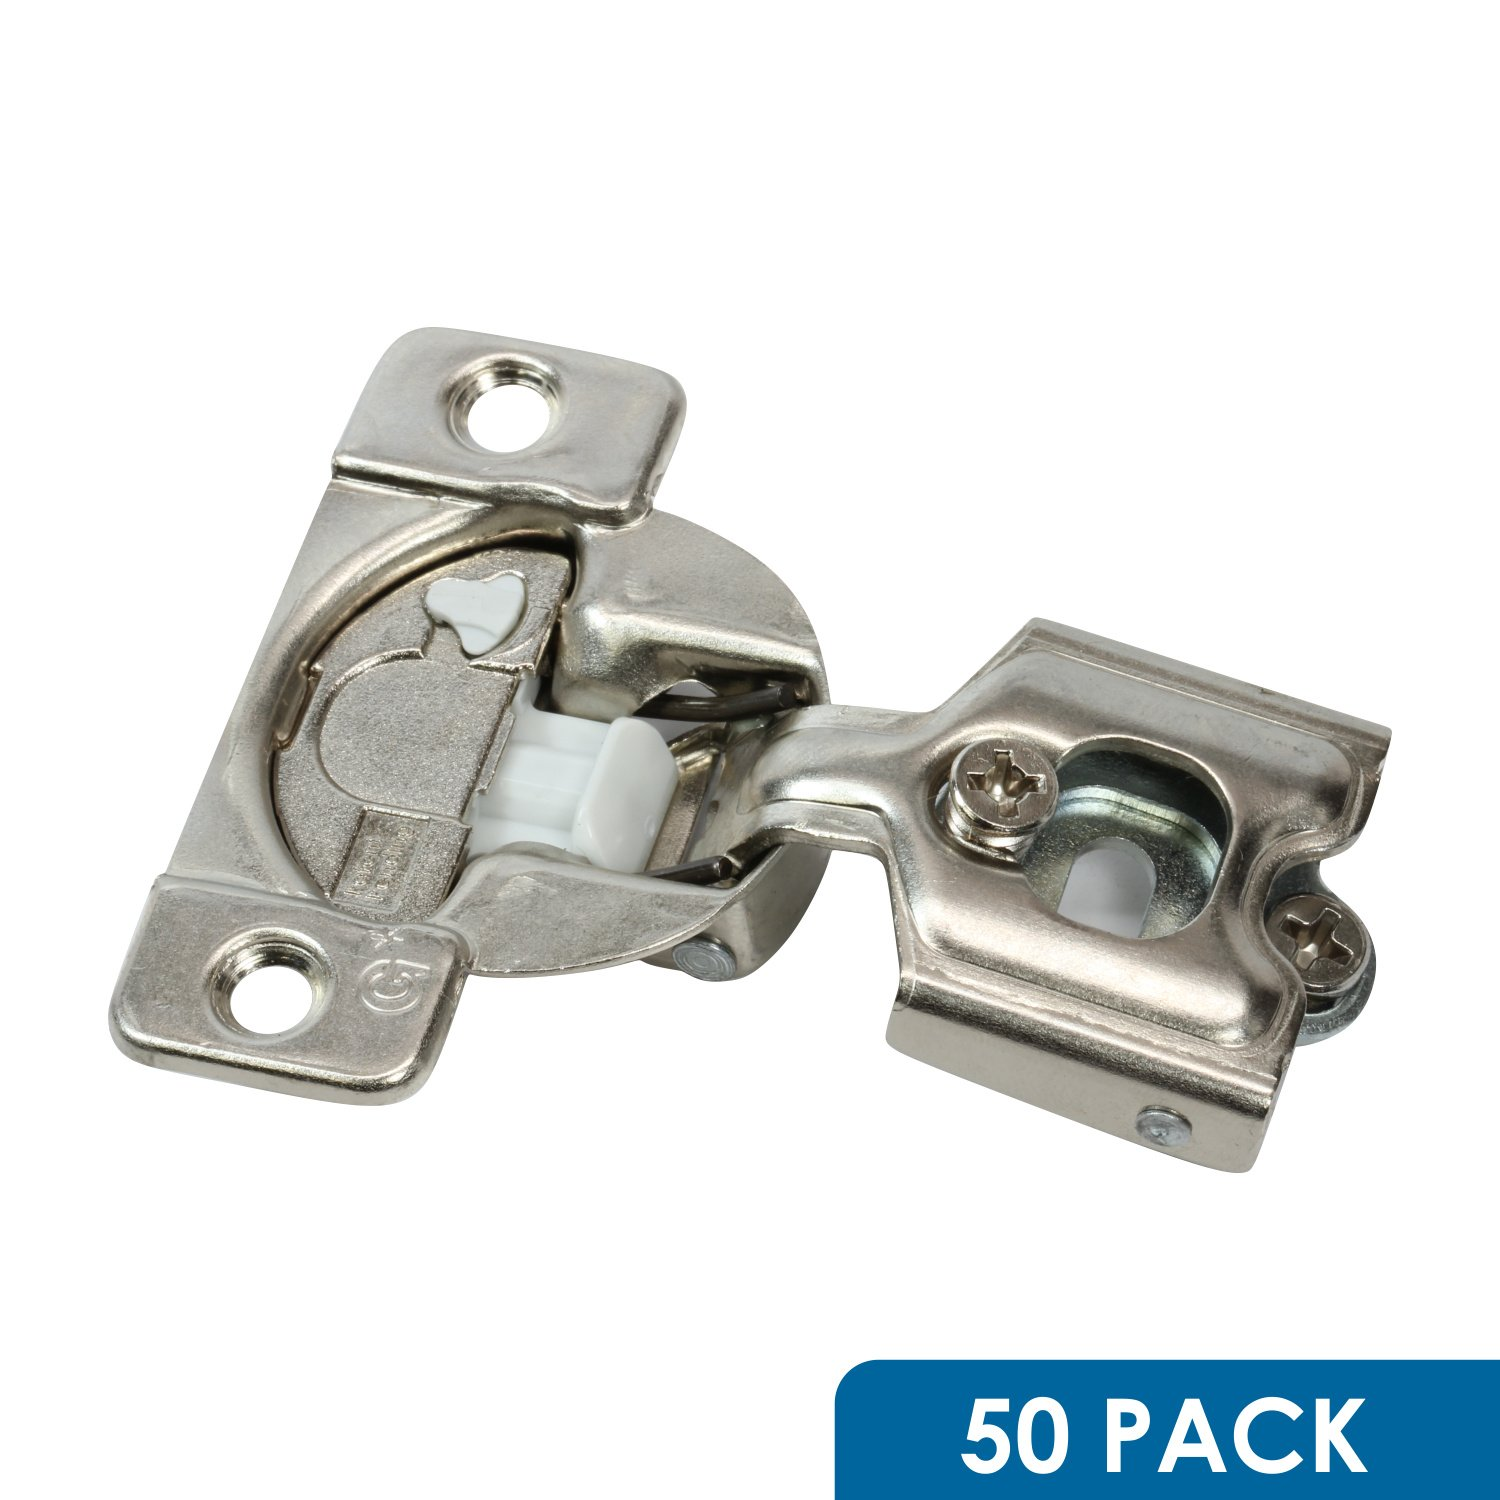 50 Pack Rok Hardware Grass TEC 864 108 Degree 1/2'' Overlay Custom 3 Level Soft Close Screw On Compact Cabinet Hinge 04431A-15 3-Way Adjustment 45mm Boring Pattern